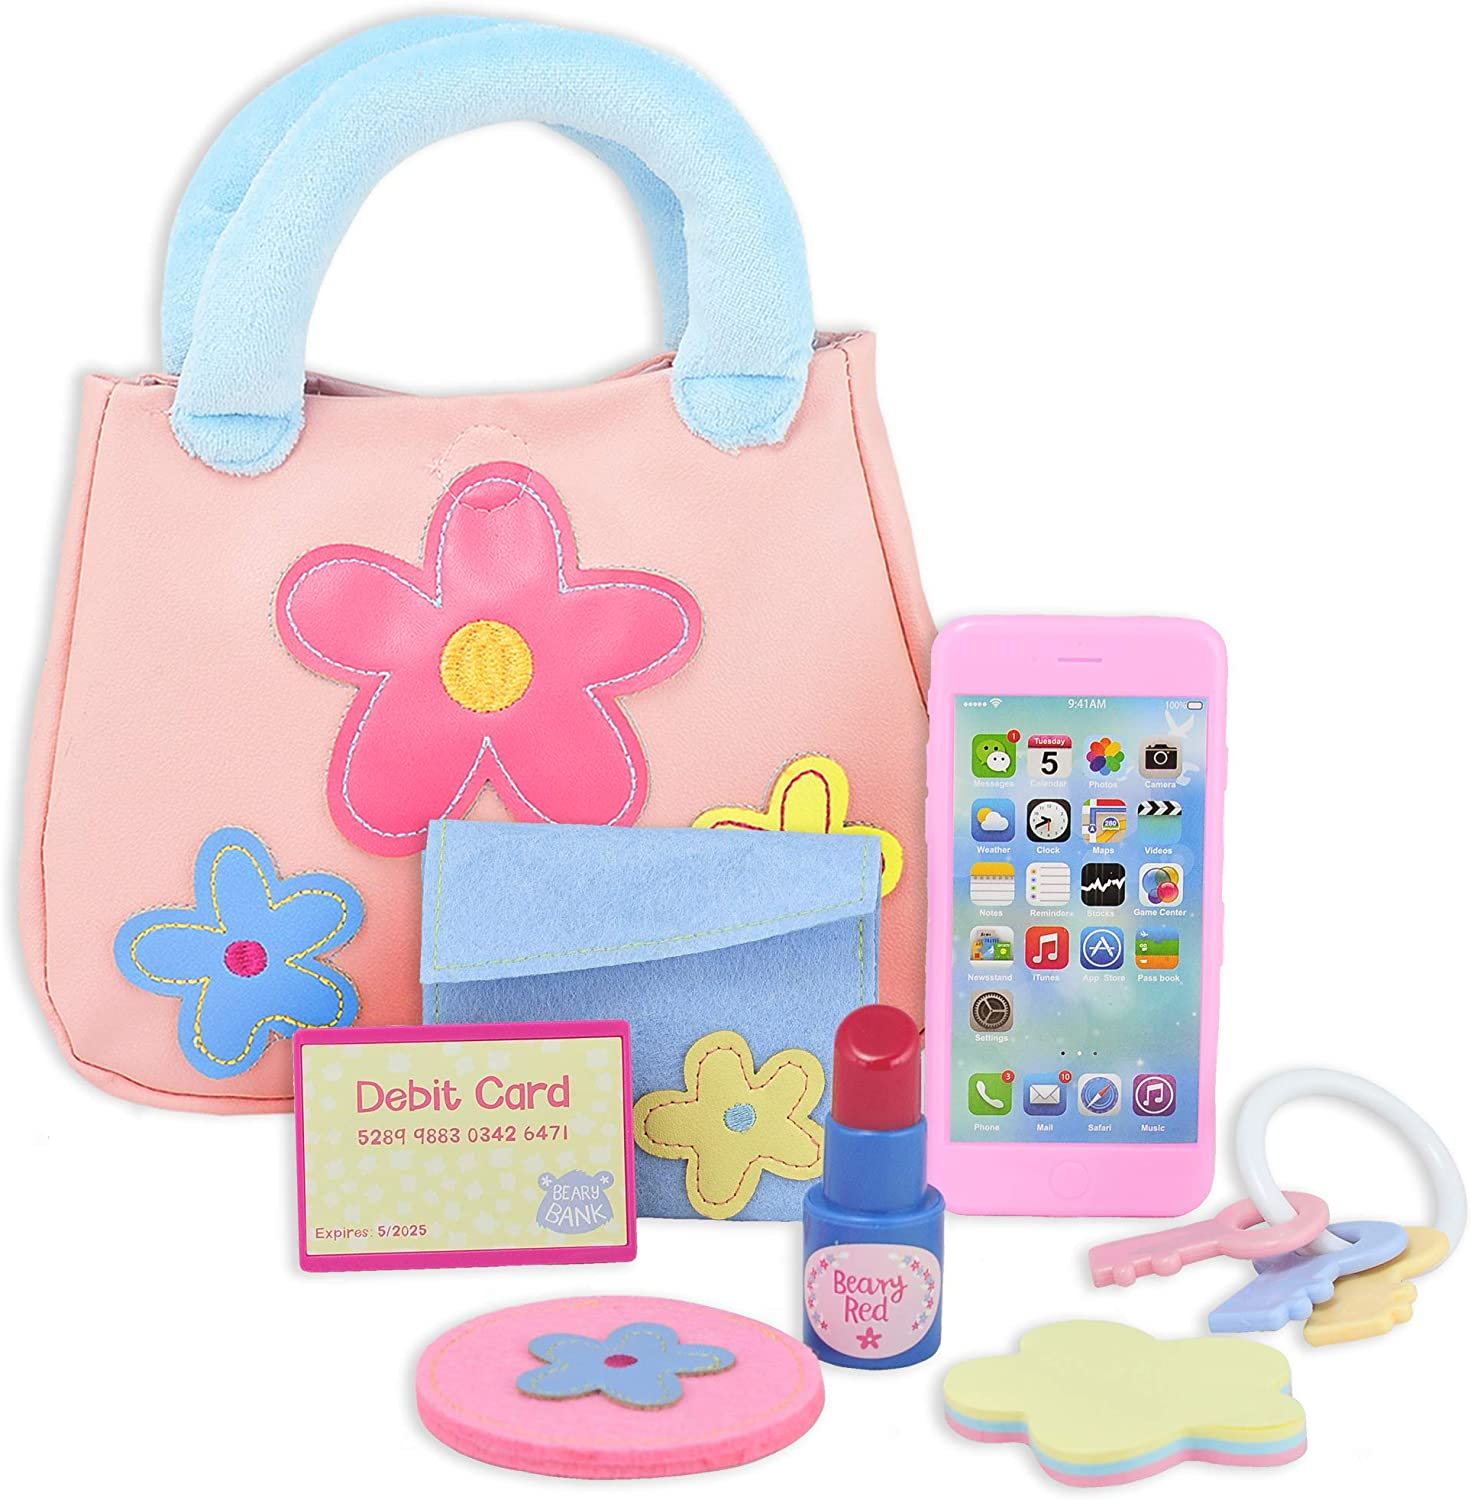 Great Pretend Play Toy for Toddler and Little Girls Ages 1 2 3 4 Years Old Storybook Includes Purse and Accessories My Beary First Purse 9-Piece Gift Set